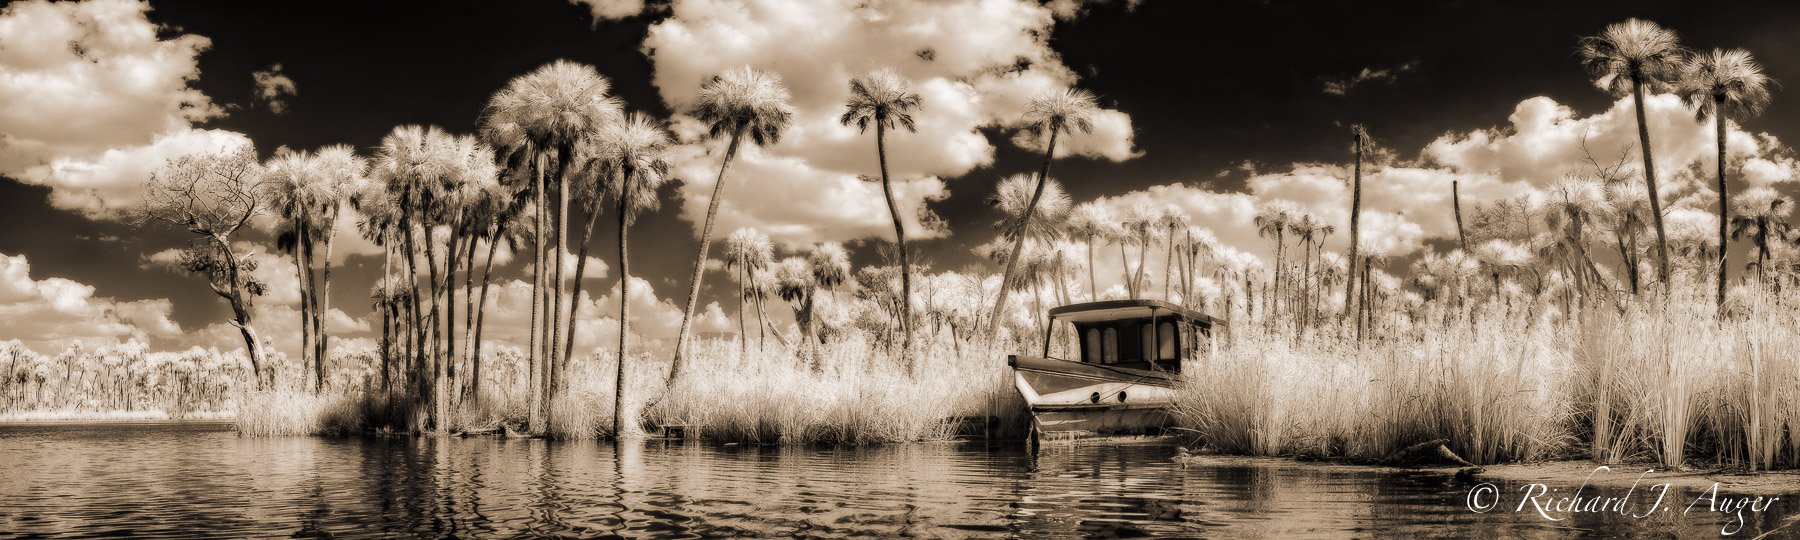 chassahowitzka river, Chaz, boat, swamp, palm trees, coastal, storm, water, landscape, photographer